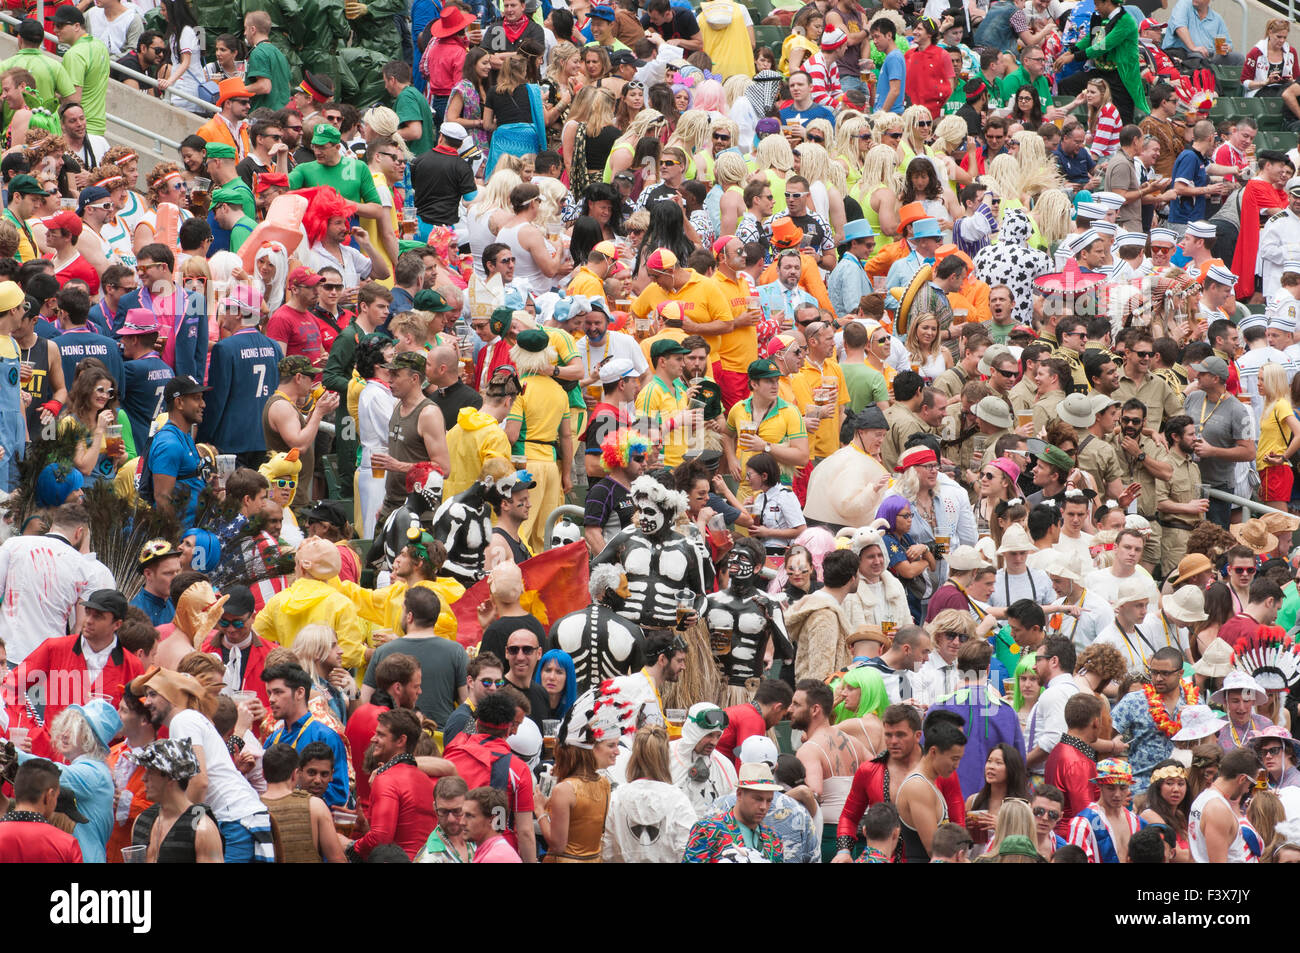 Crowds of fans wearing costumes in the south stand of Hong Kong Stadium Sevens Rugby event. Stock Photo